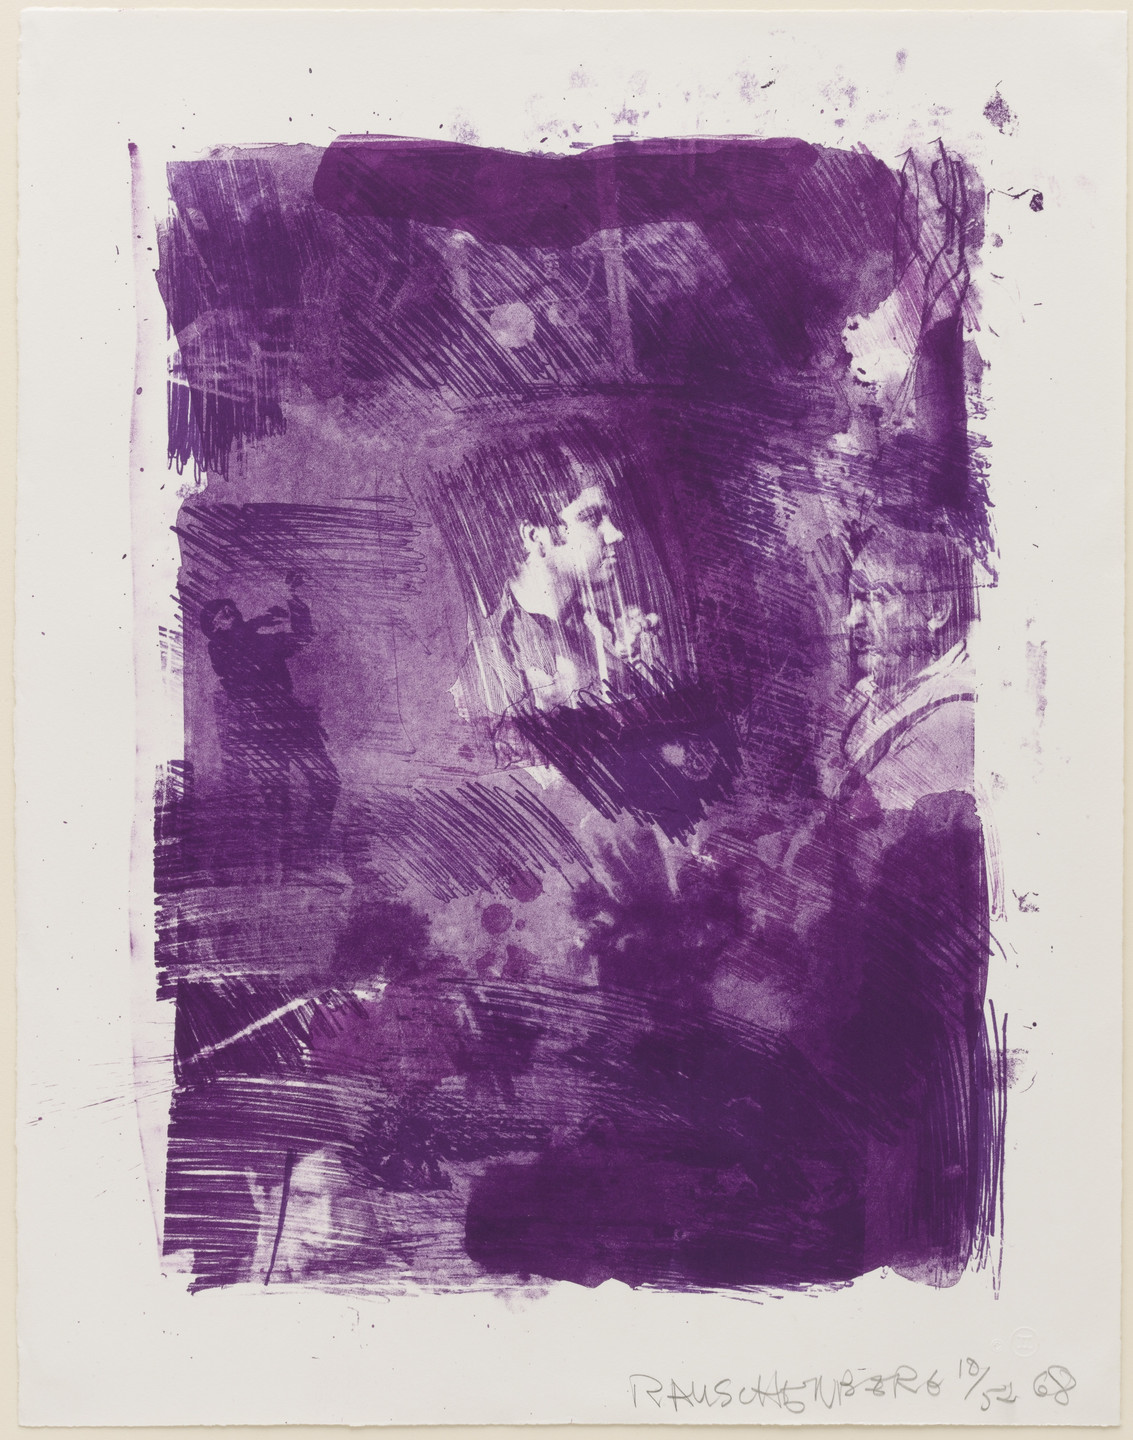 Robert Rauschenberg. Flower Re-Run from the series Reels (B + C). 1968